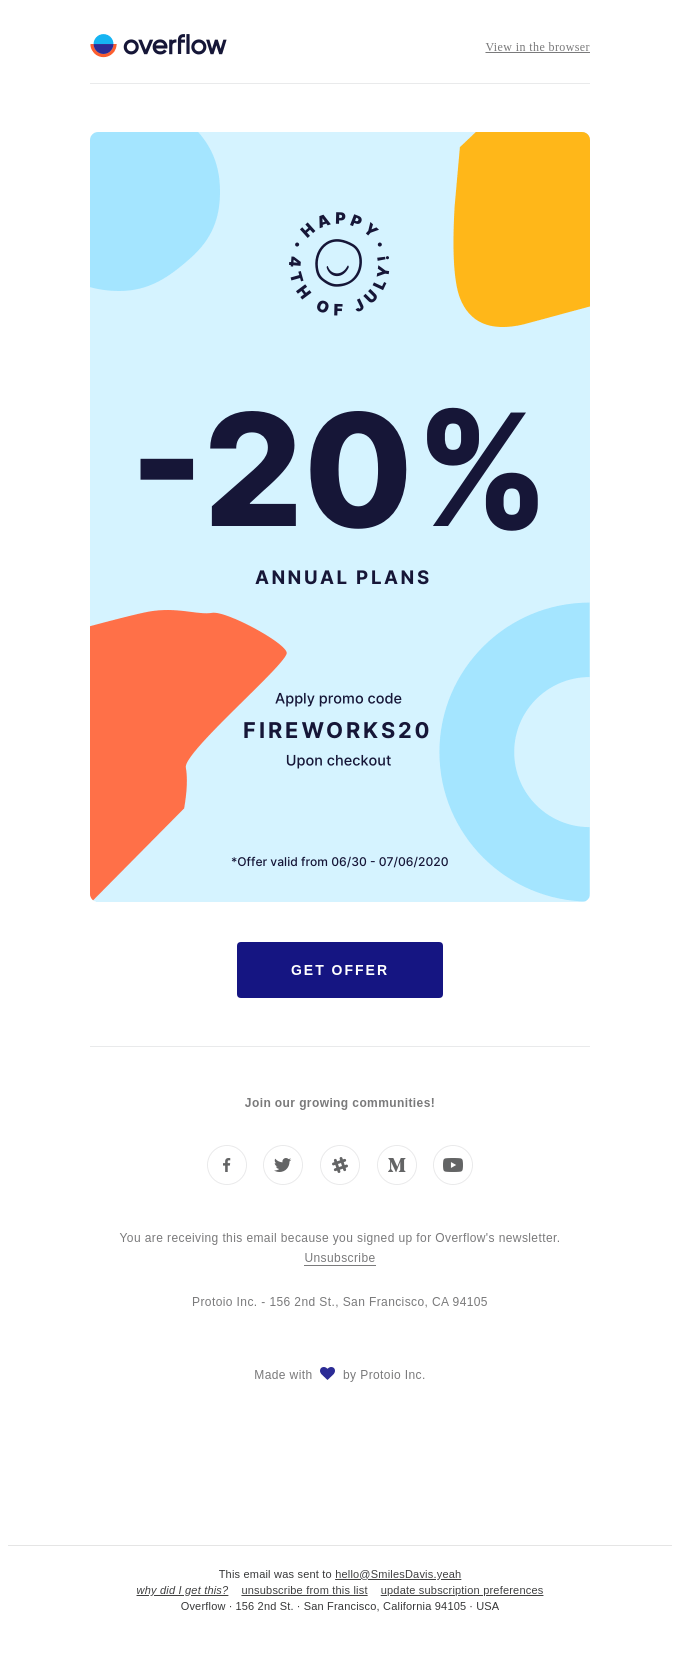 Celebrate the 4th of July early with 20% OFF on Overflow annual plans.